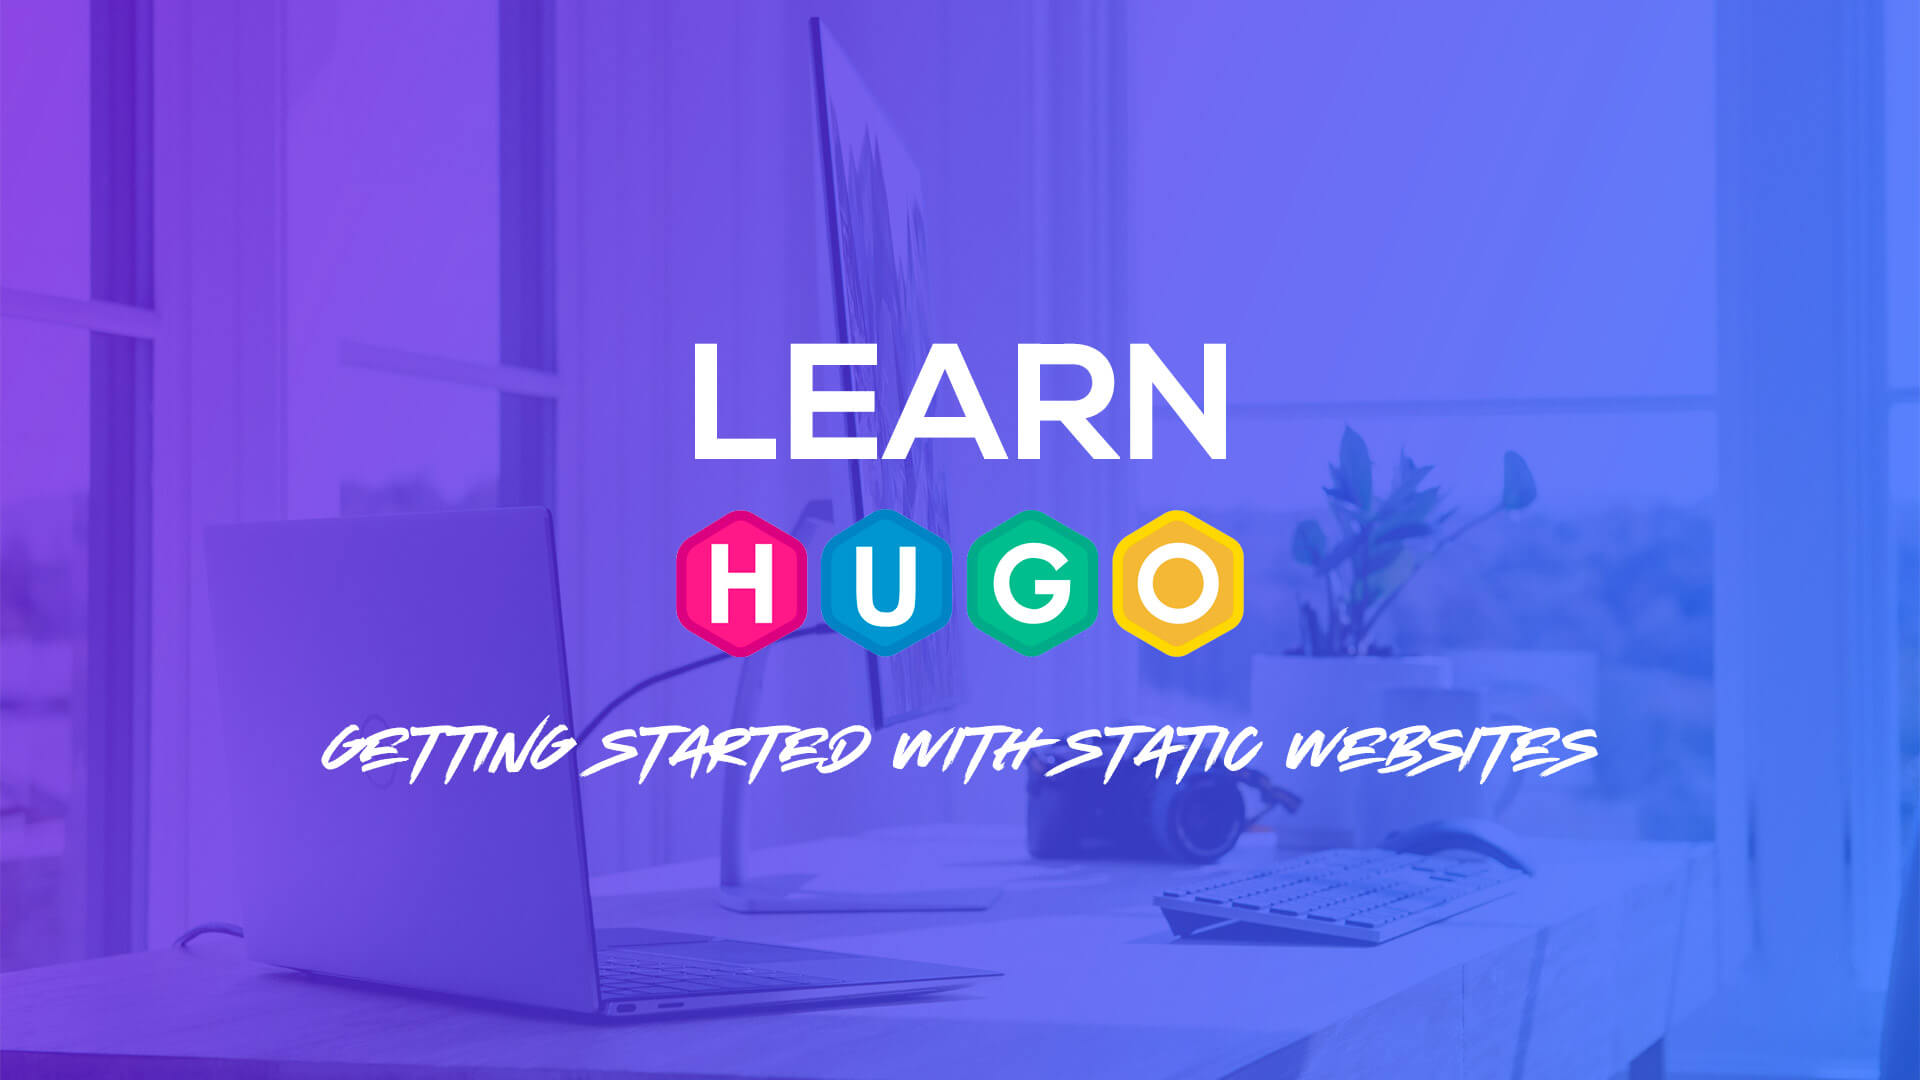 Getting Started with Static Websites - Learn Hugo